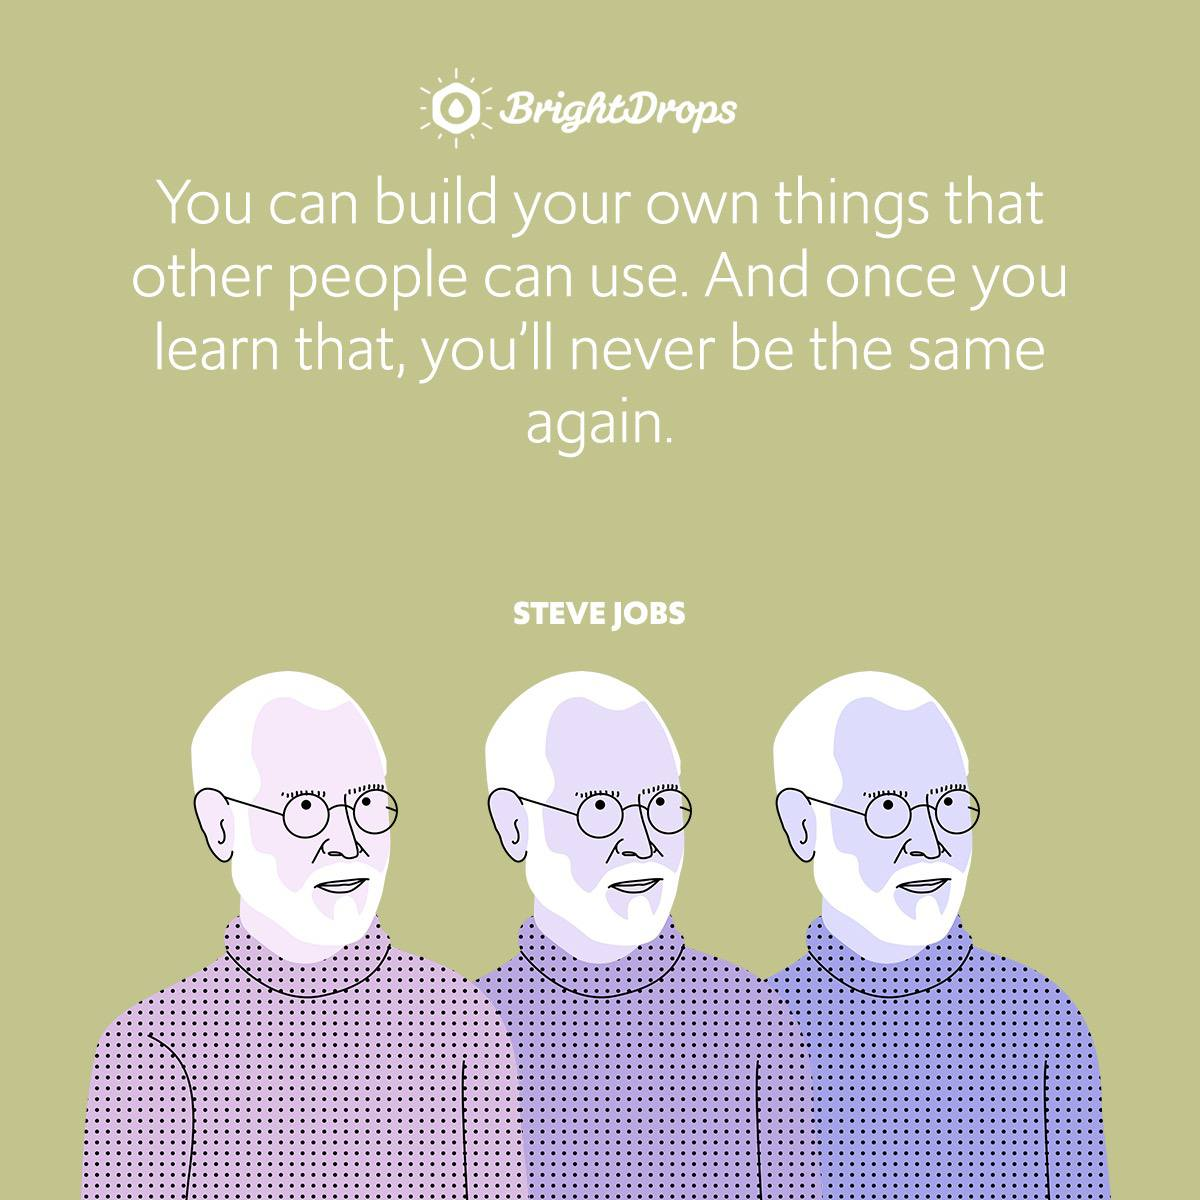 You can build your own things that other people can use. And once you learn that, you'll never be the same again.